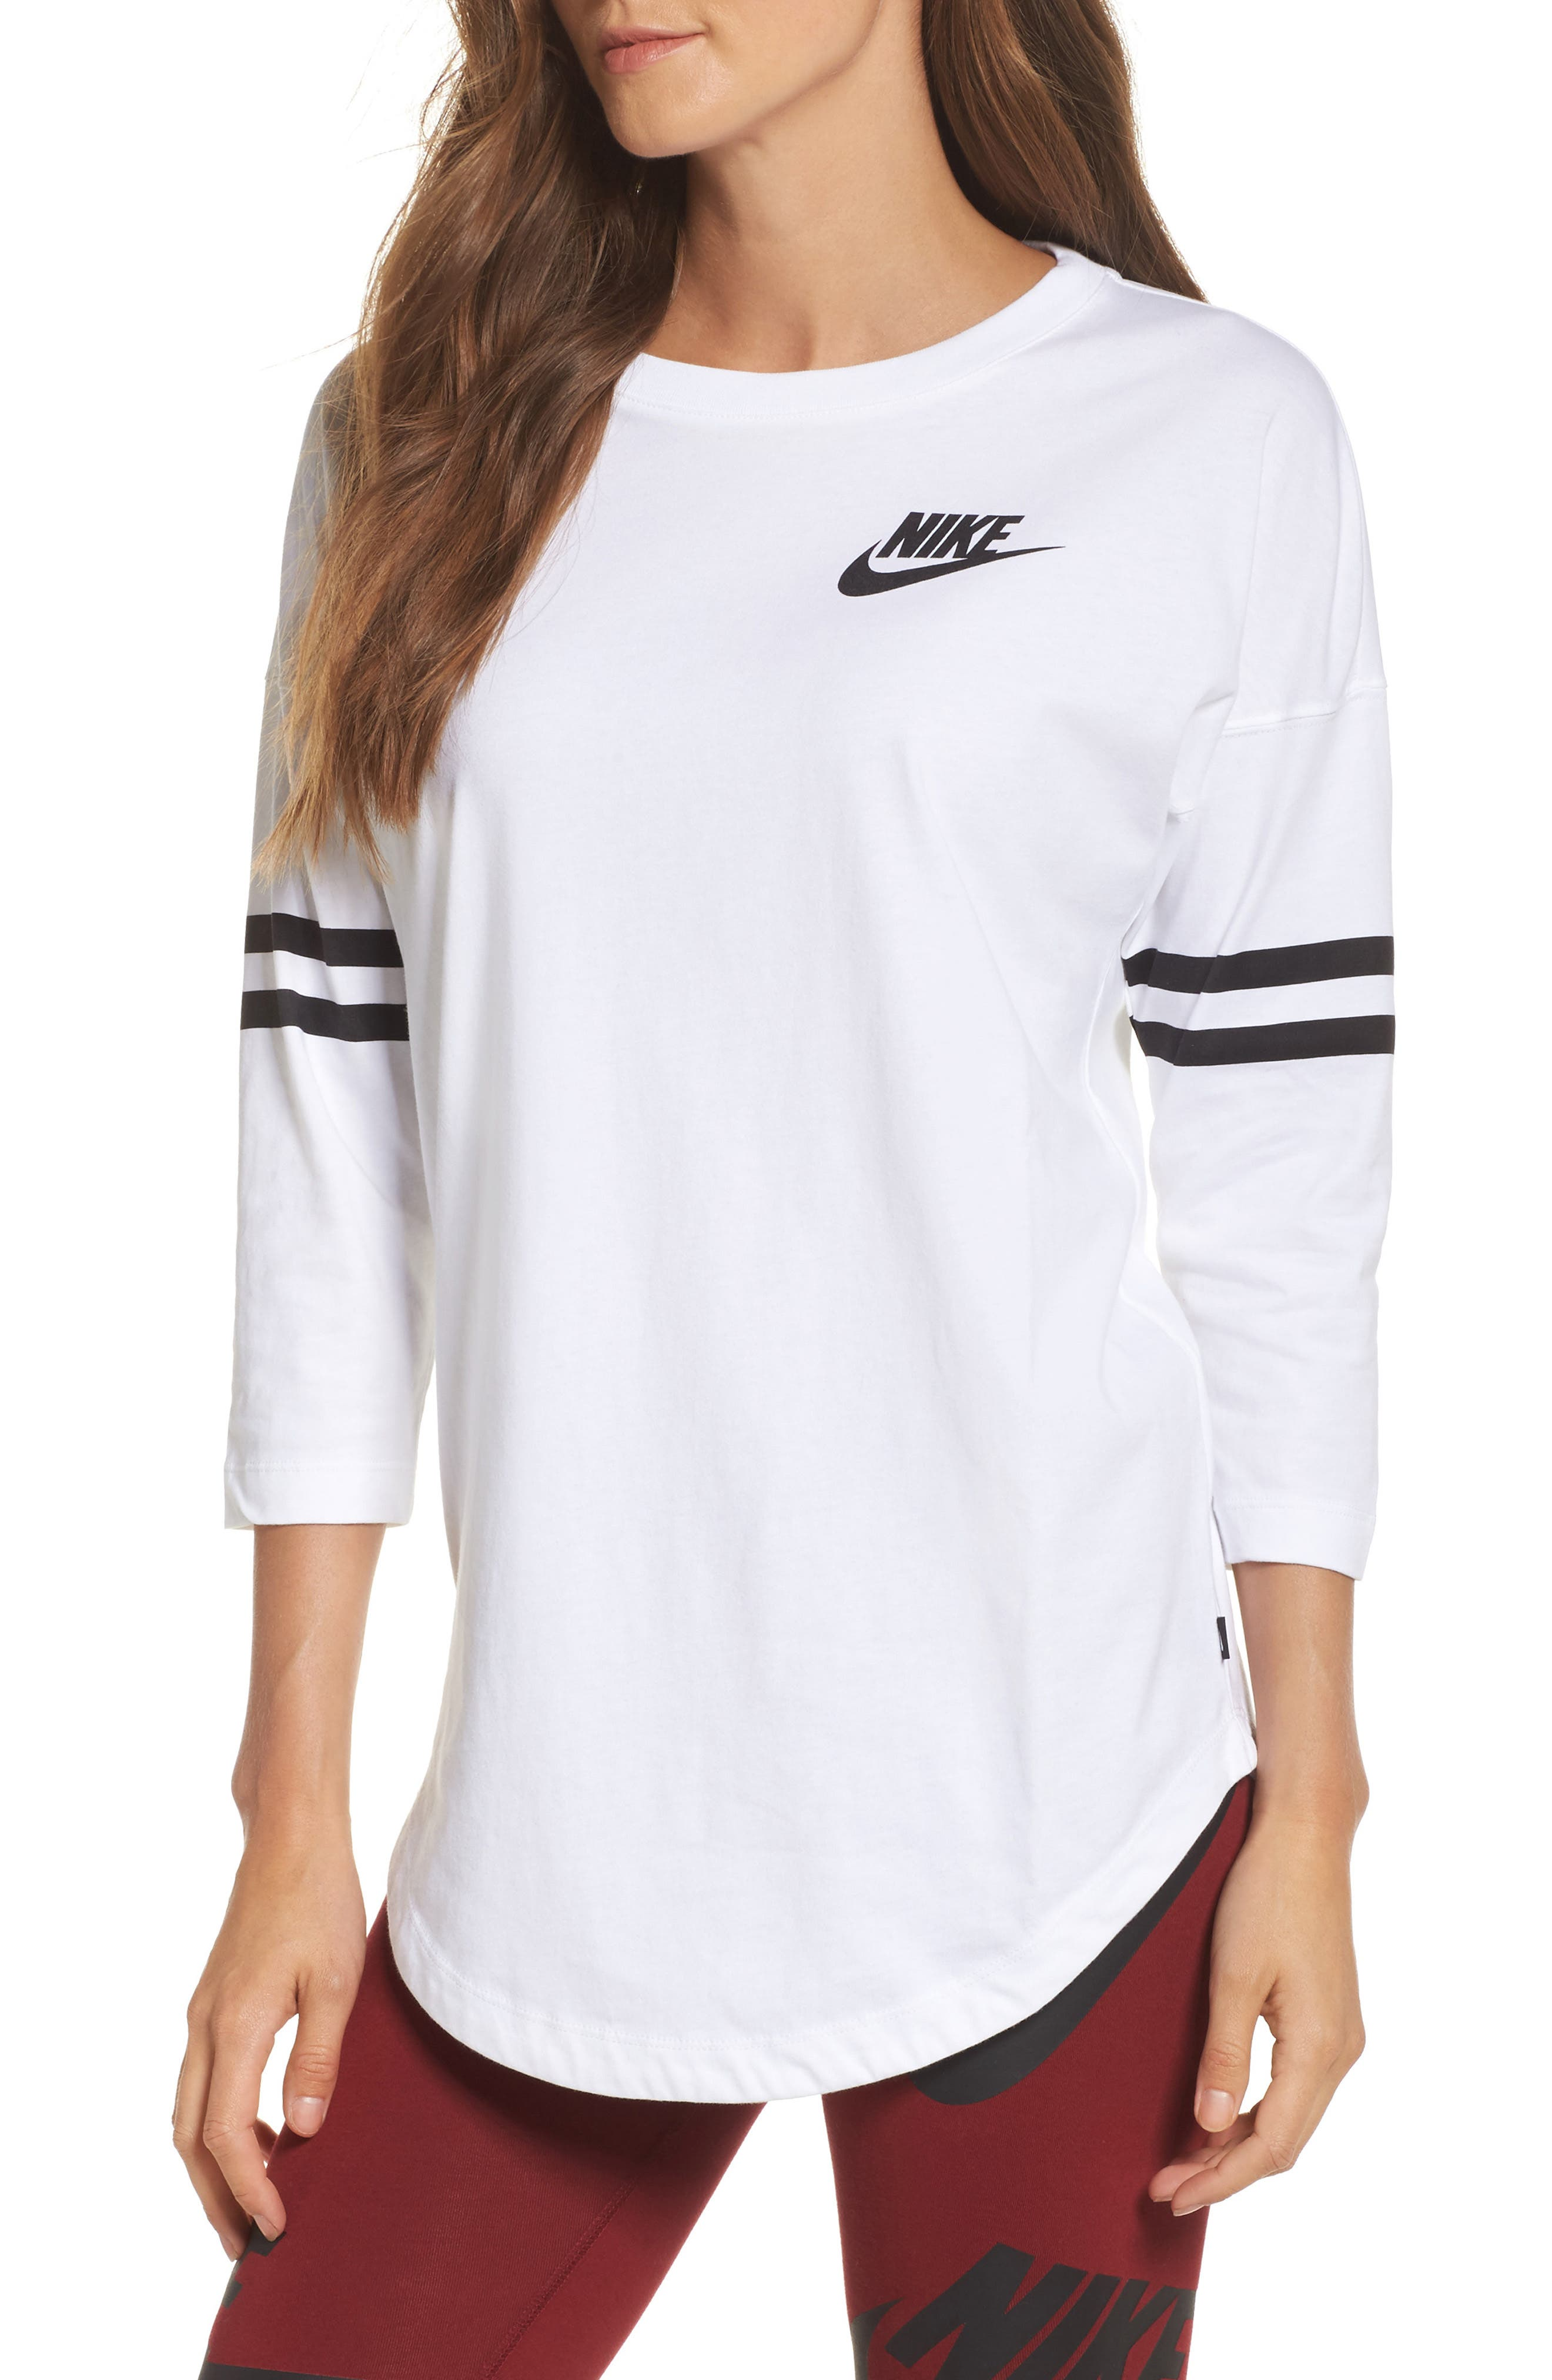 Just Do It Top,                         Main,                         color, White/ Black